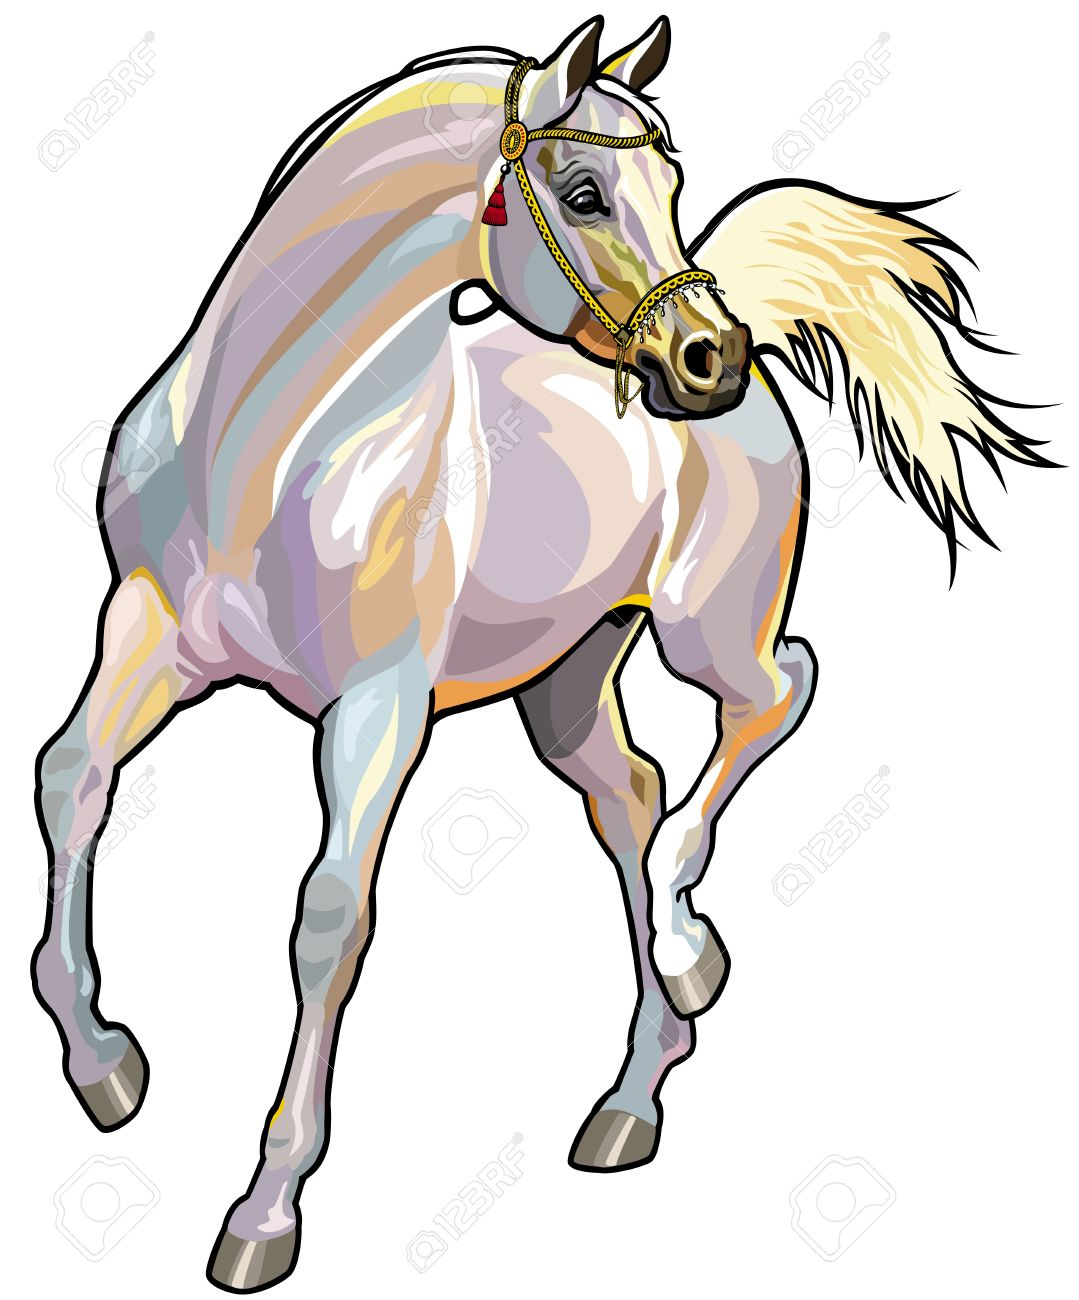 arabian horse with bridle,front view picture isolated on white background Stock Vector - 18873163